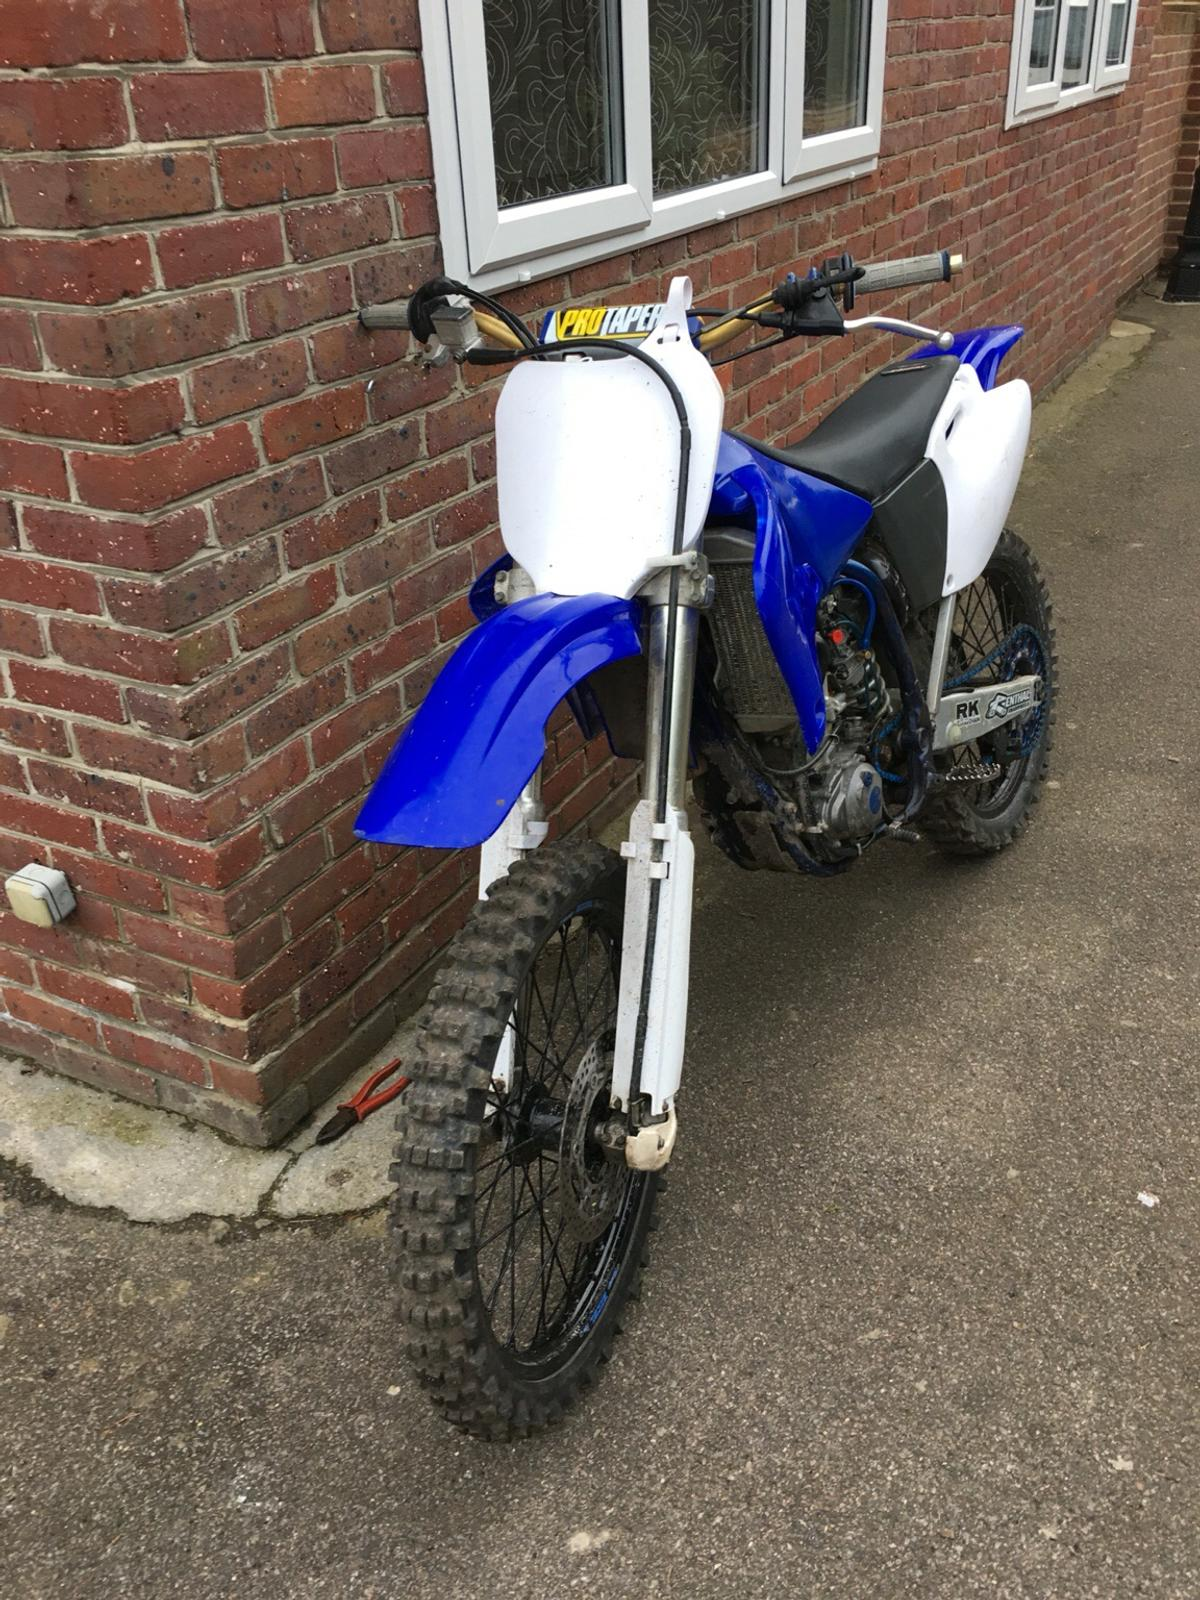 Yamaha Yzf 250 2002 in SS14 Basildon for £1,500 00 for sale - Shpock